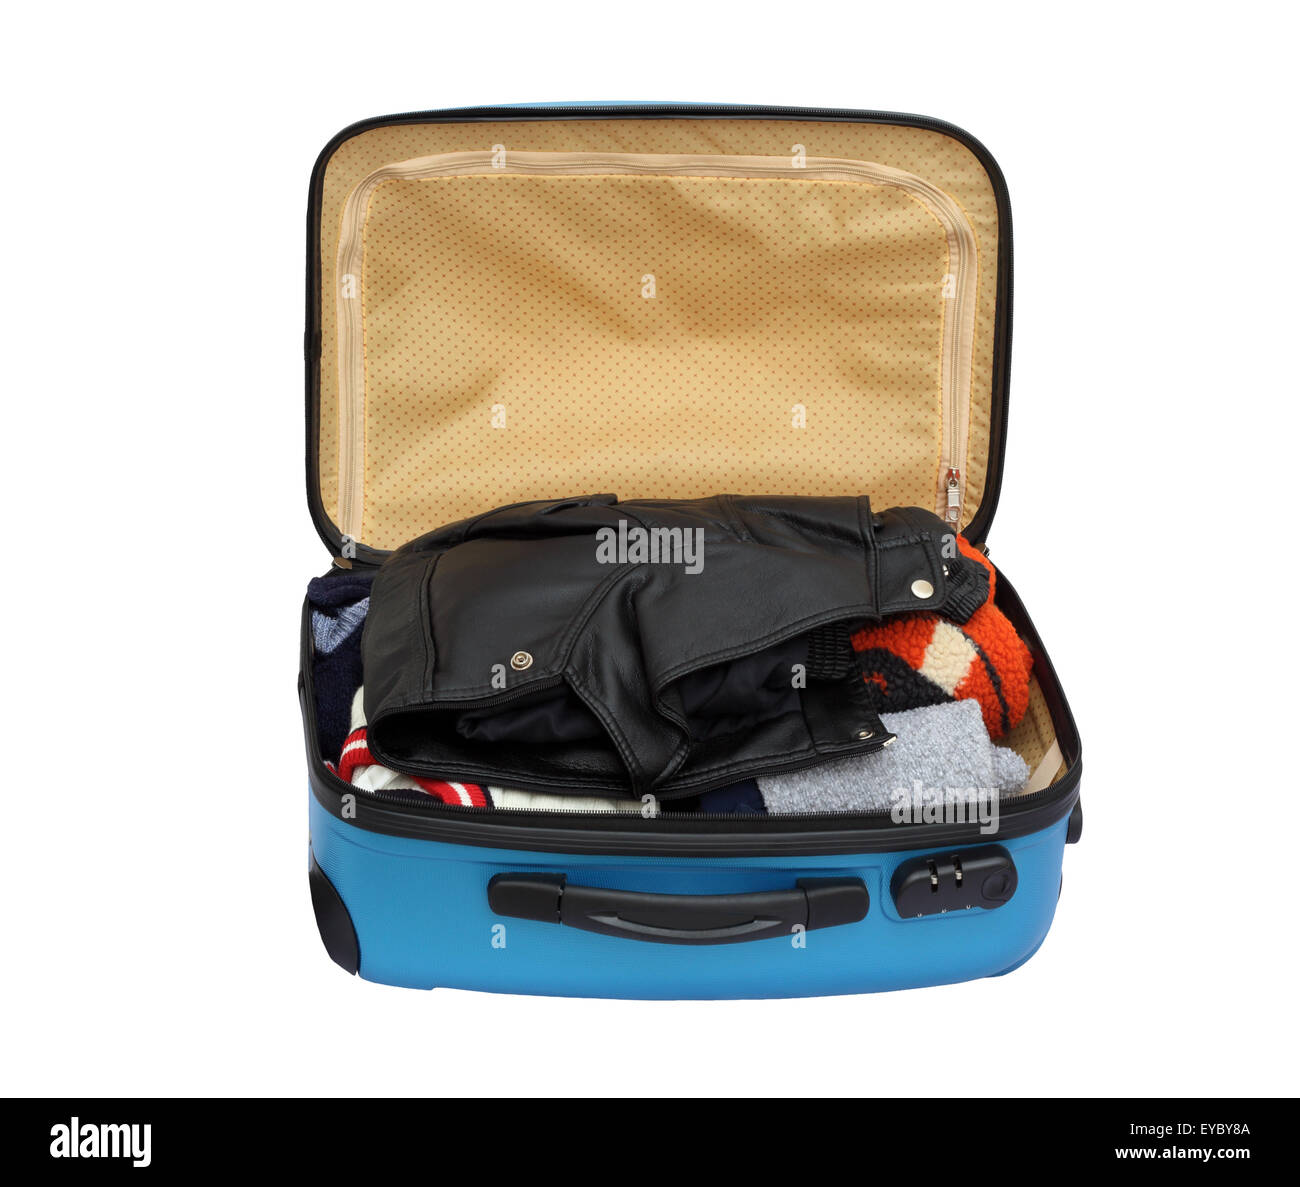 df1a20225c8 Open Suitcase Packed With Warm Clothing on White Background Stock ...